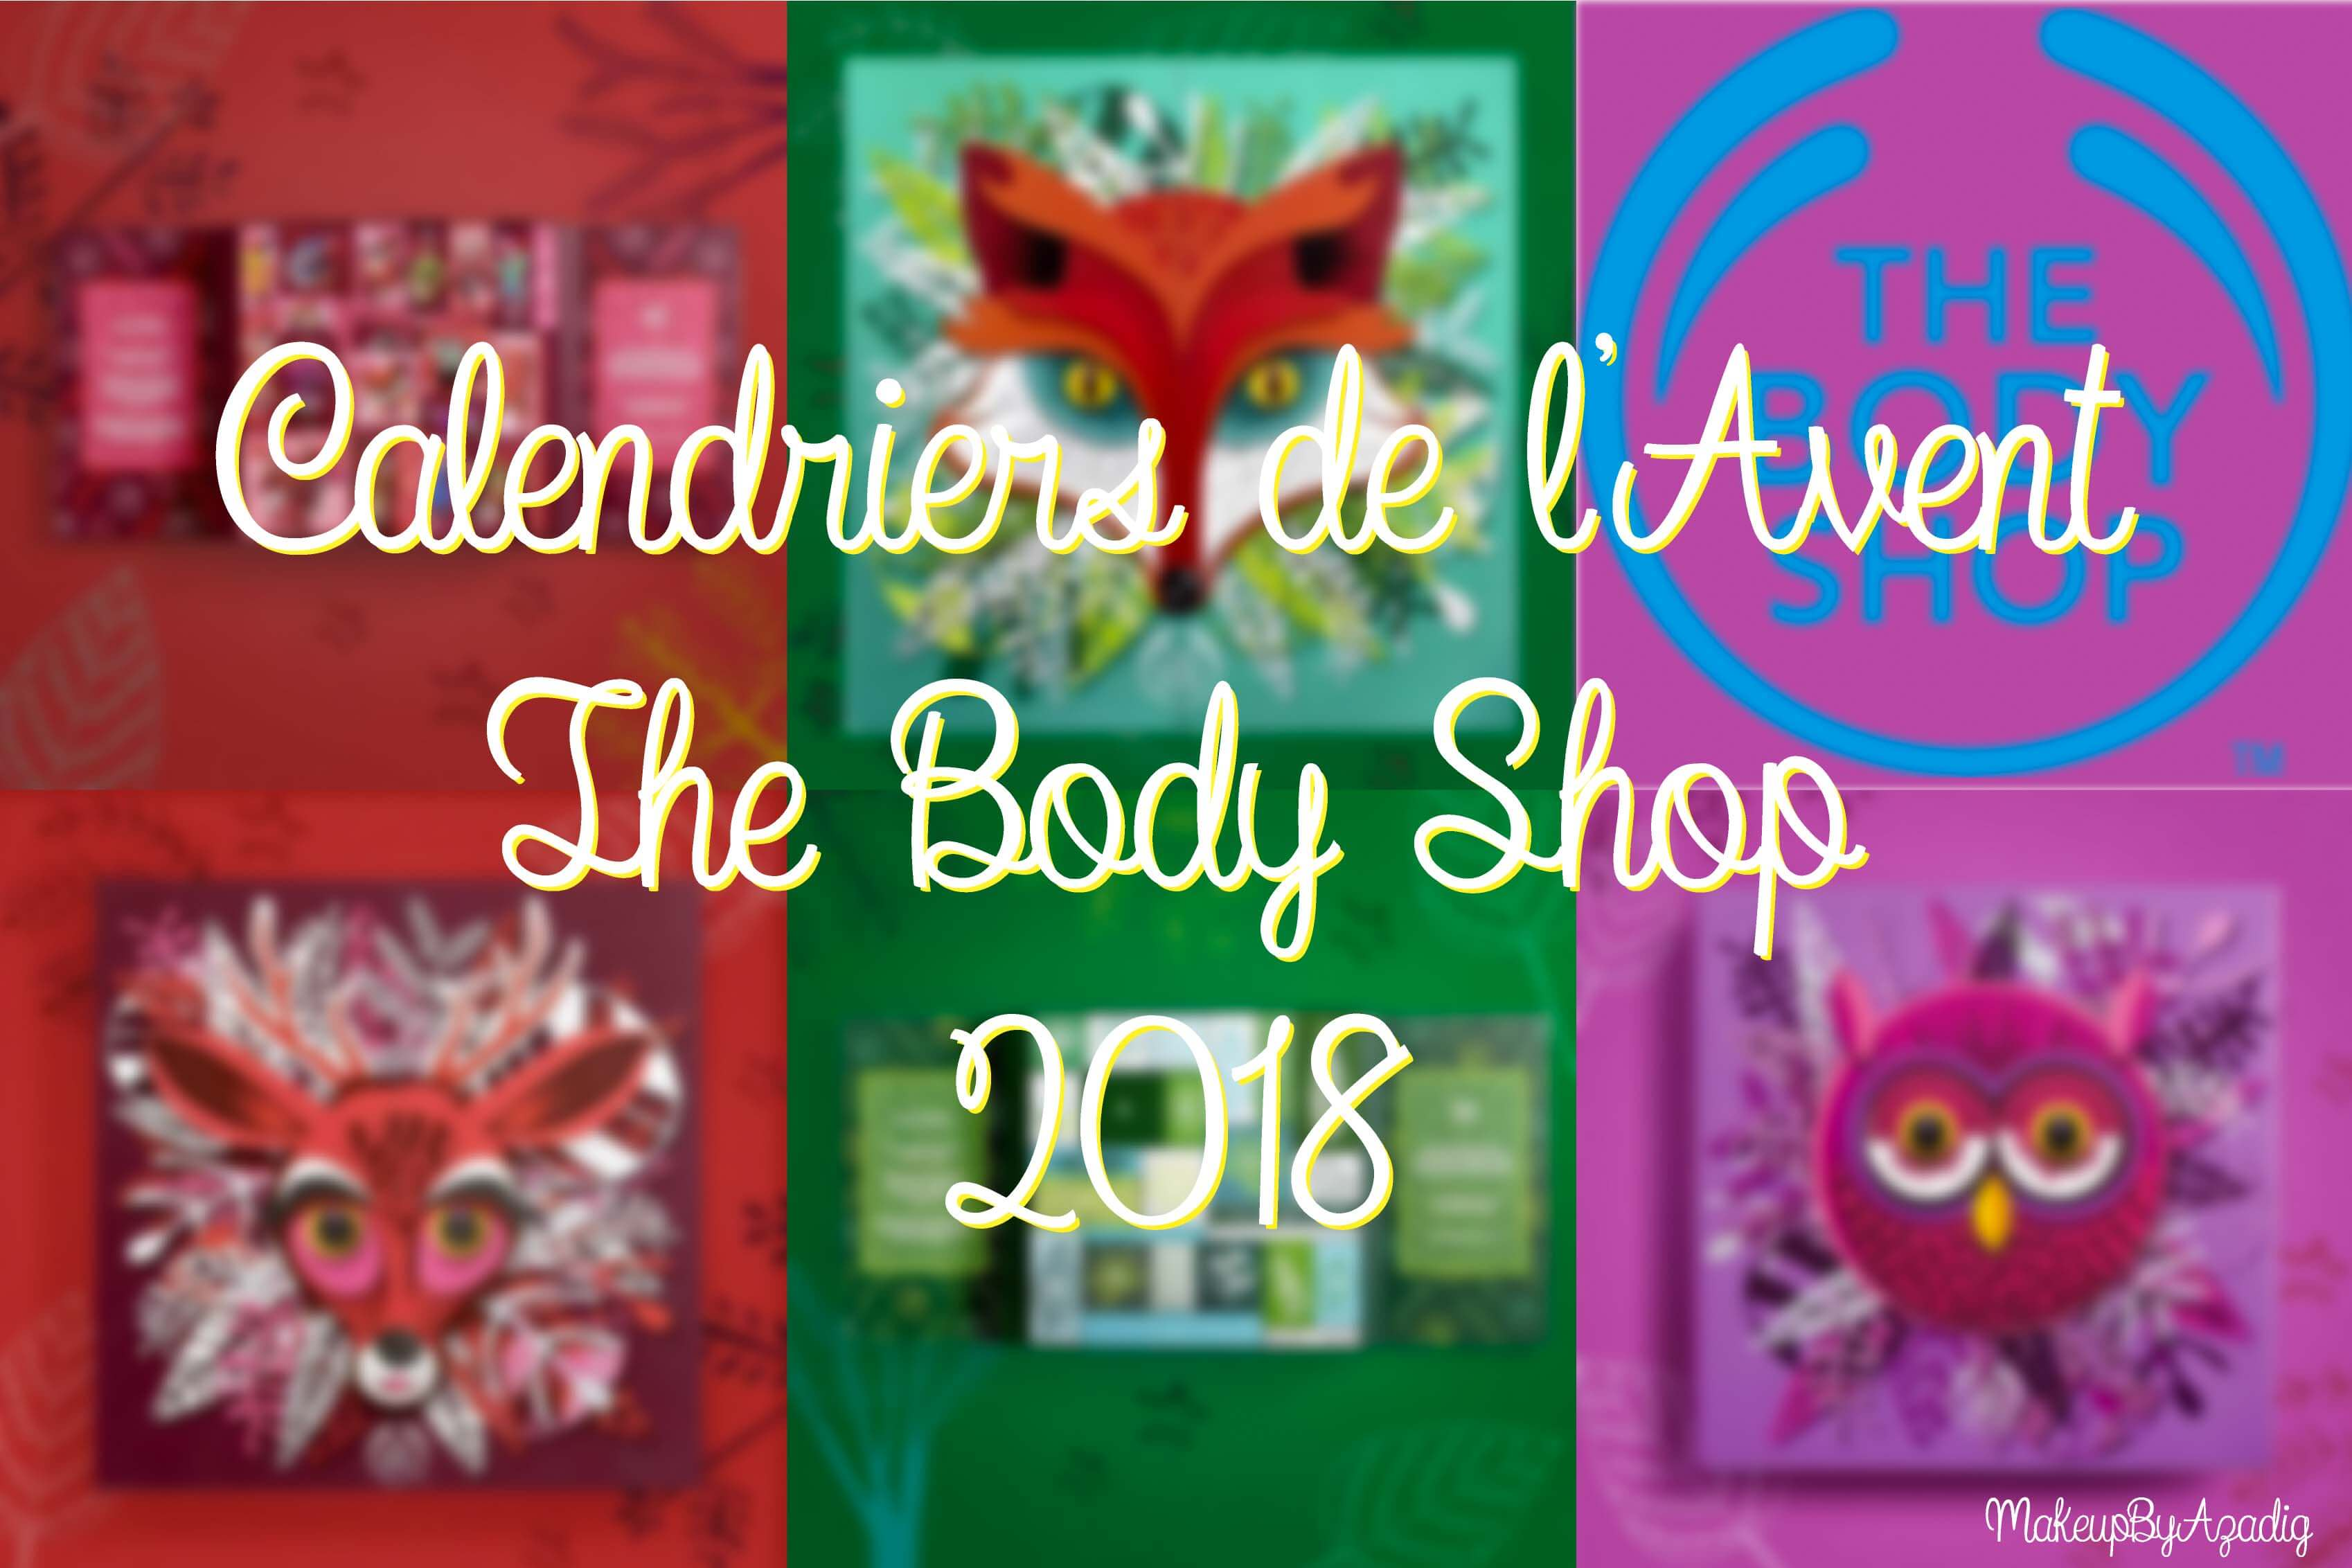 miniature-calendriers-de-lavent-the-body-shop-2018-ultime-classique-decouverte-makeupbyazadig-faon-rouge-2